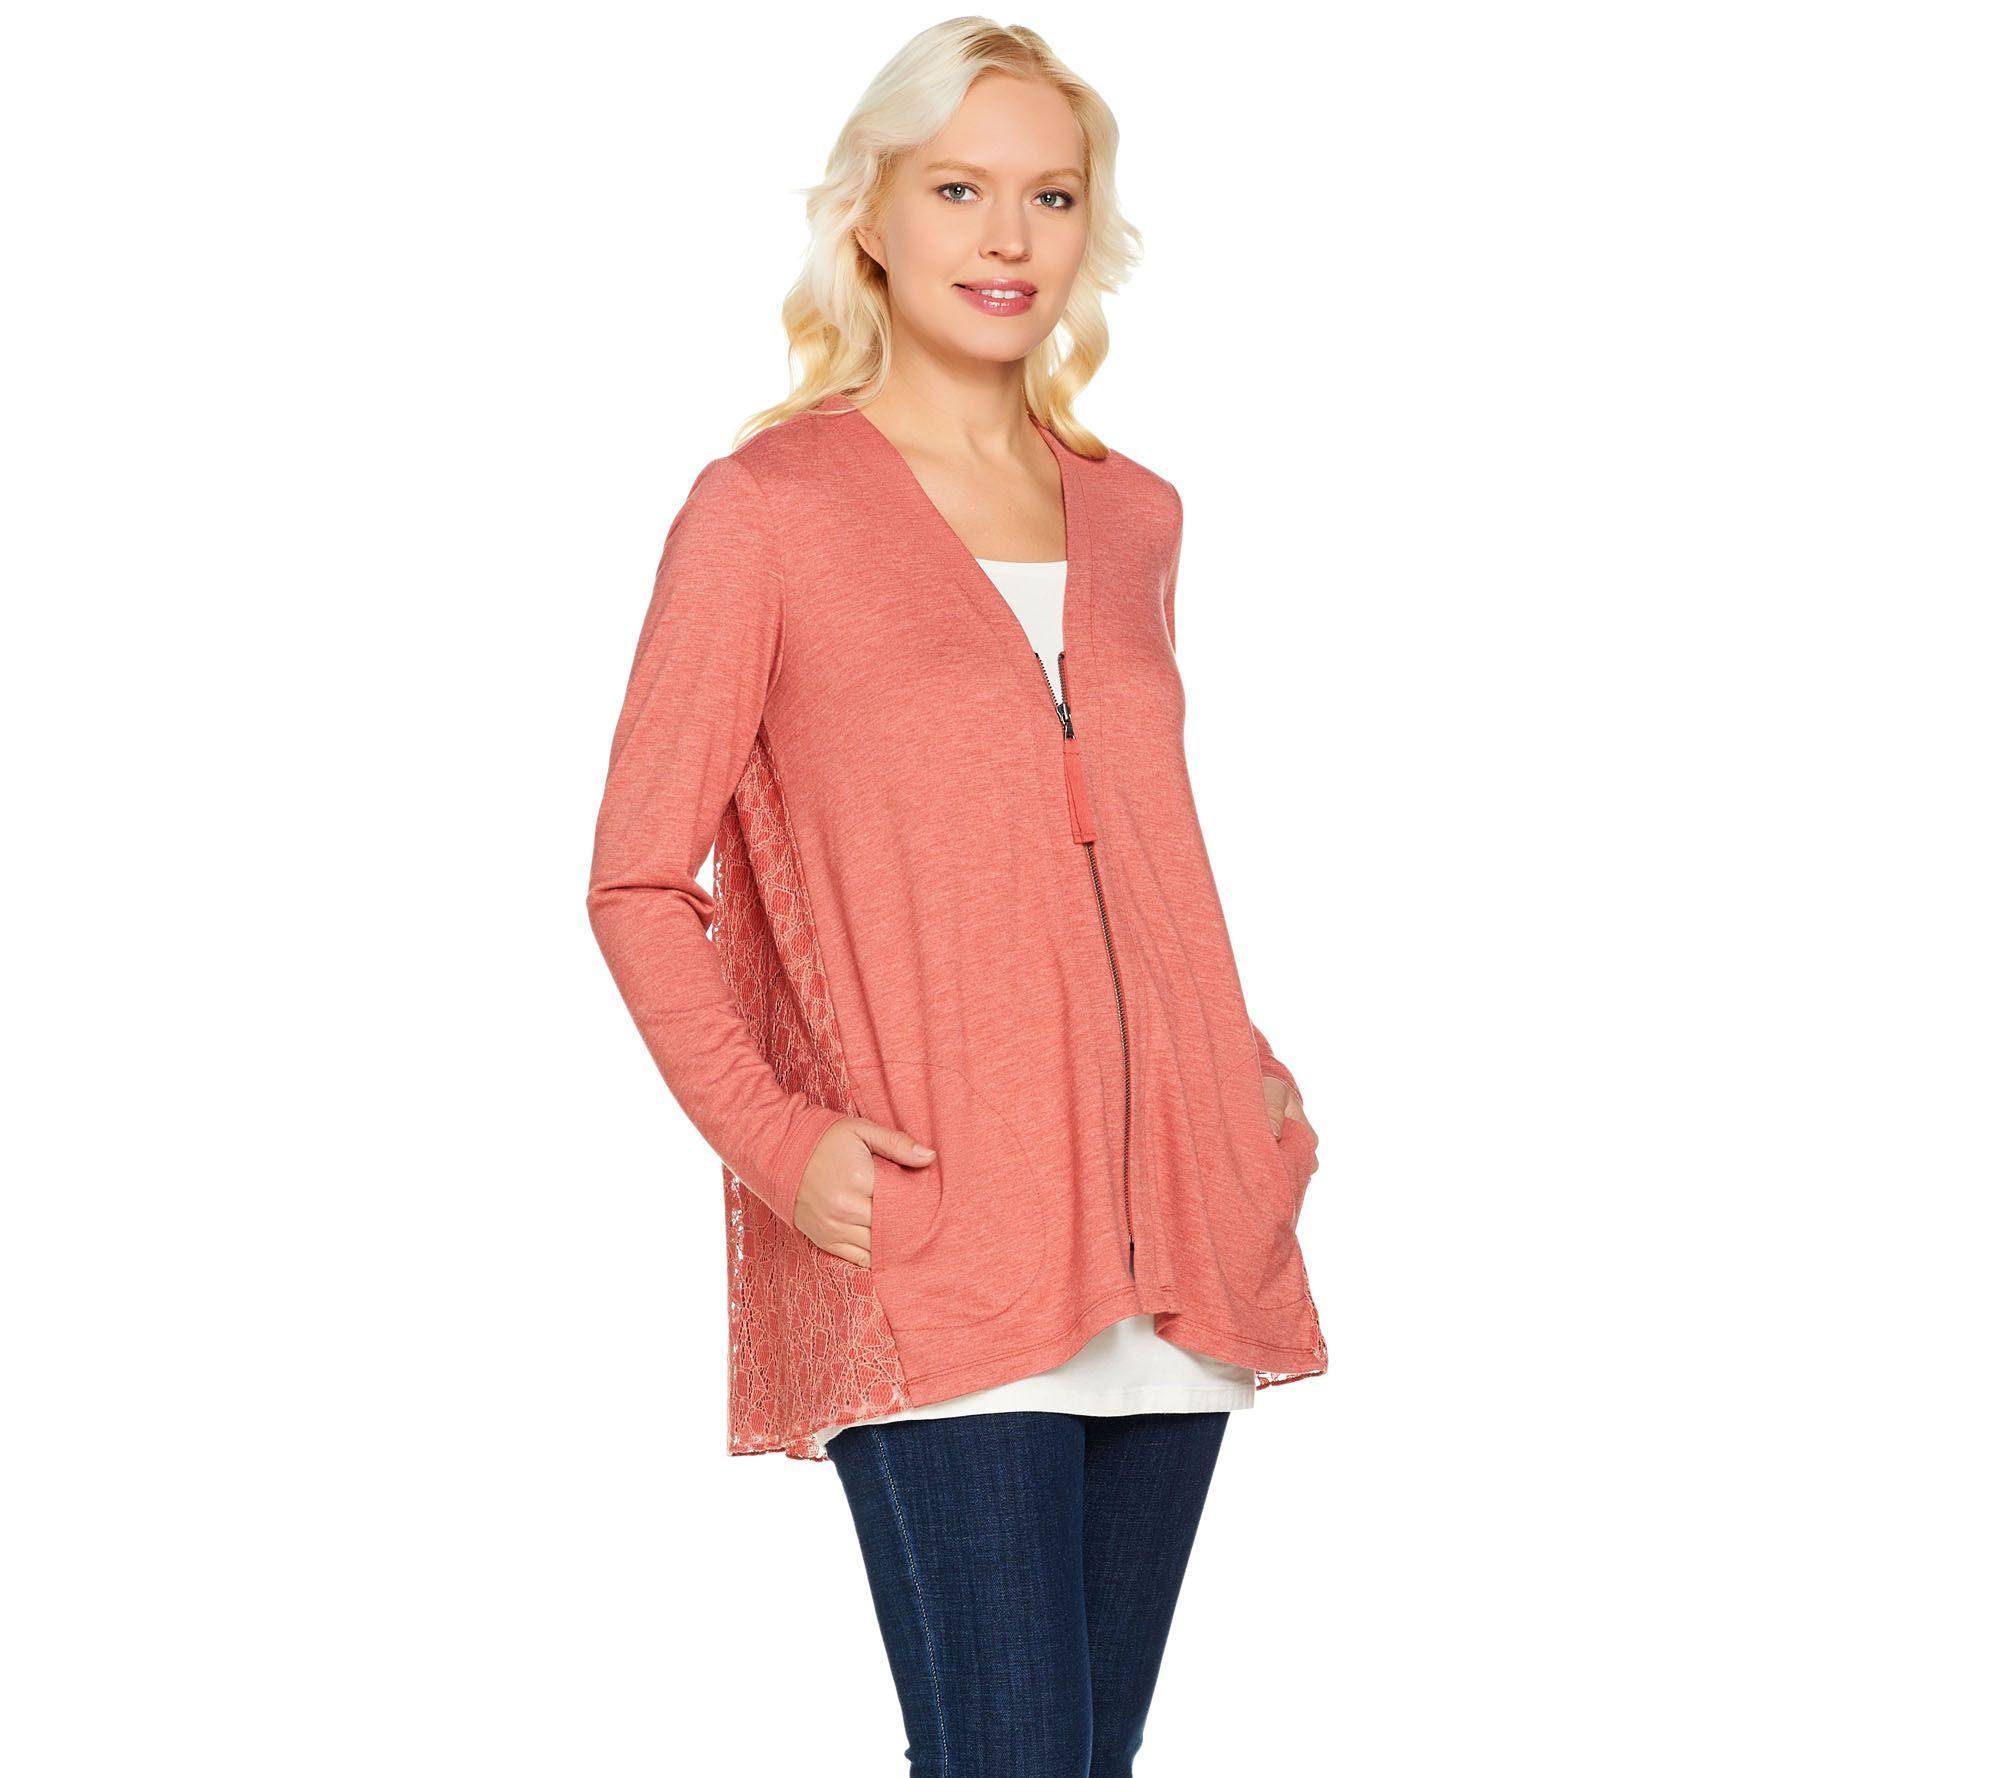 e0e27322c8d6f LOGO Lounge by Lori Goldstein Zip Front Cardigan with Lace Back - Page 1 —  QVC.com